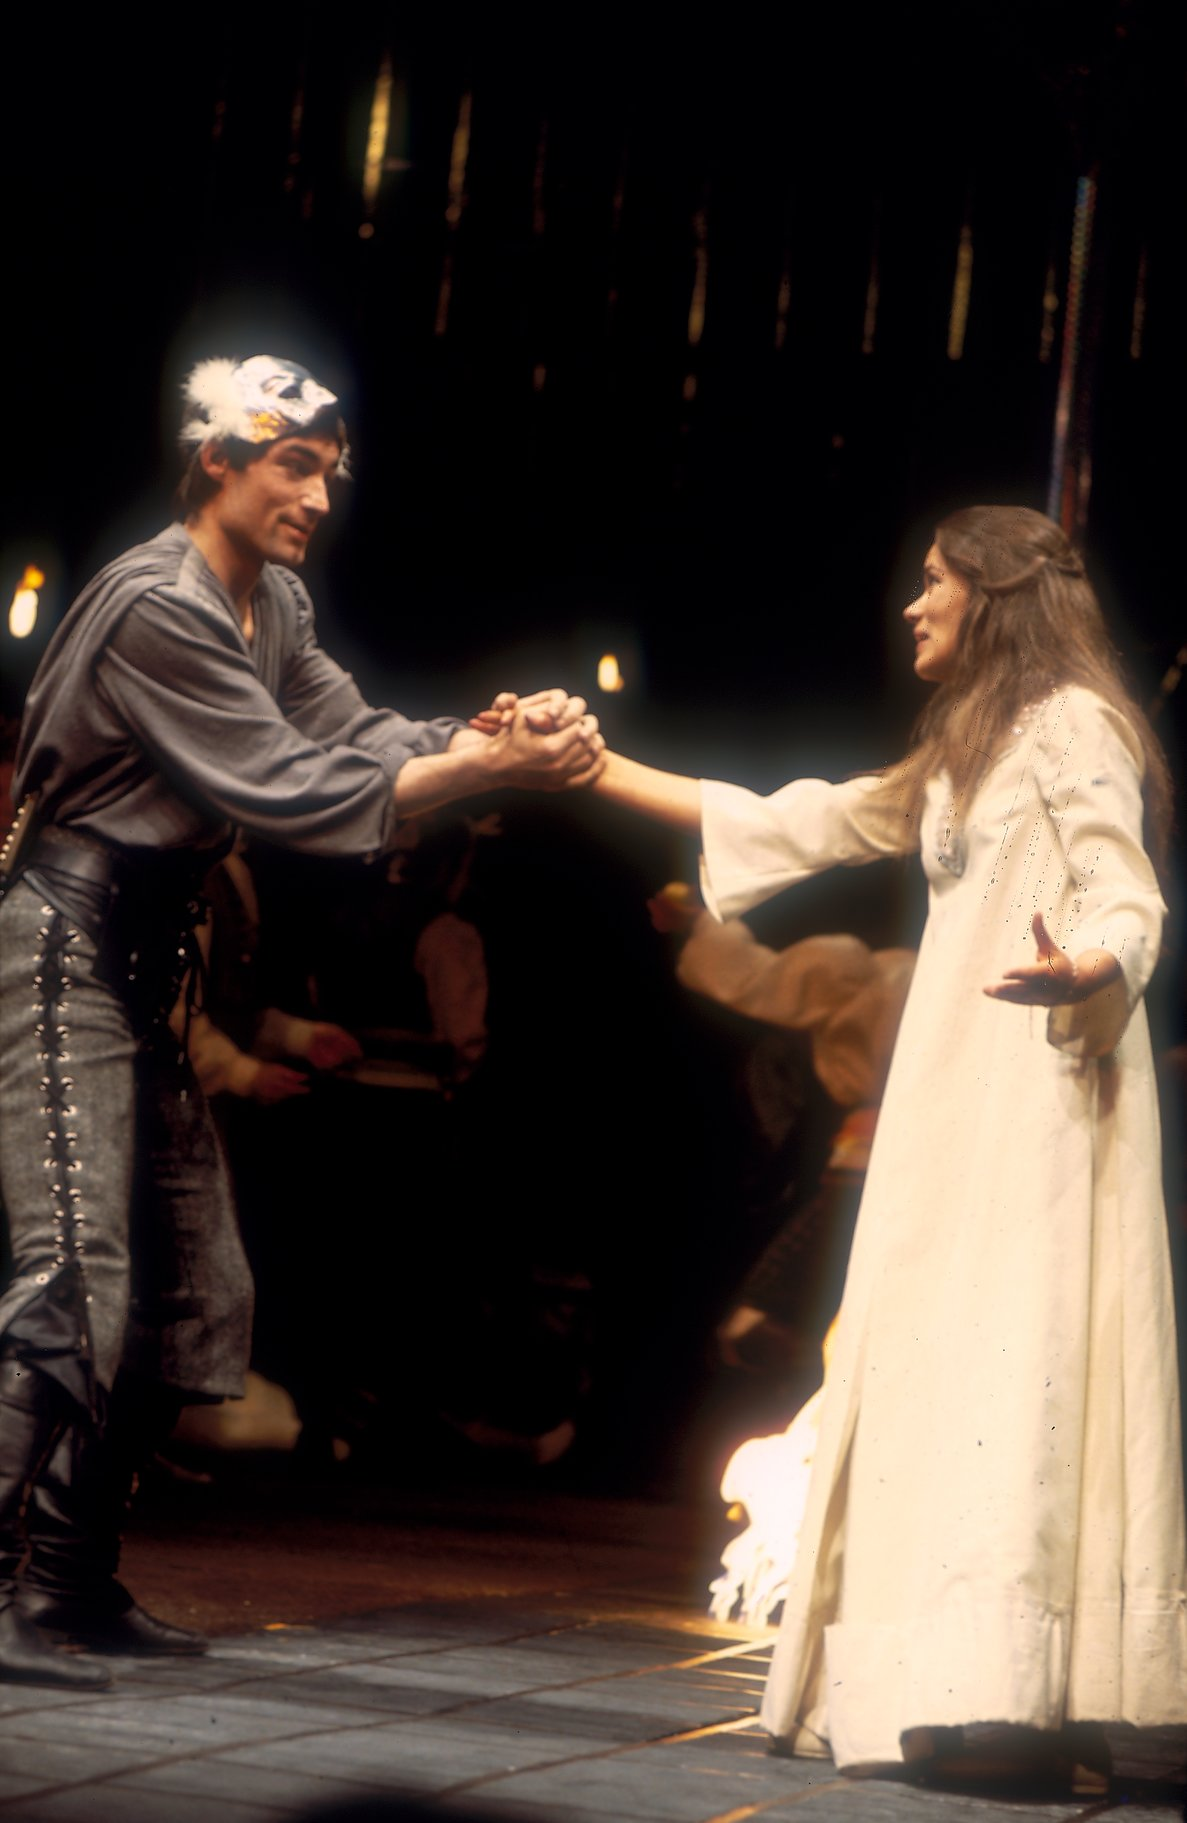 Romeo and Juliet meet during the Capulets' Feast.